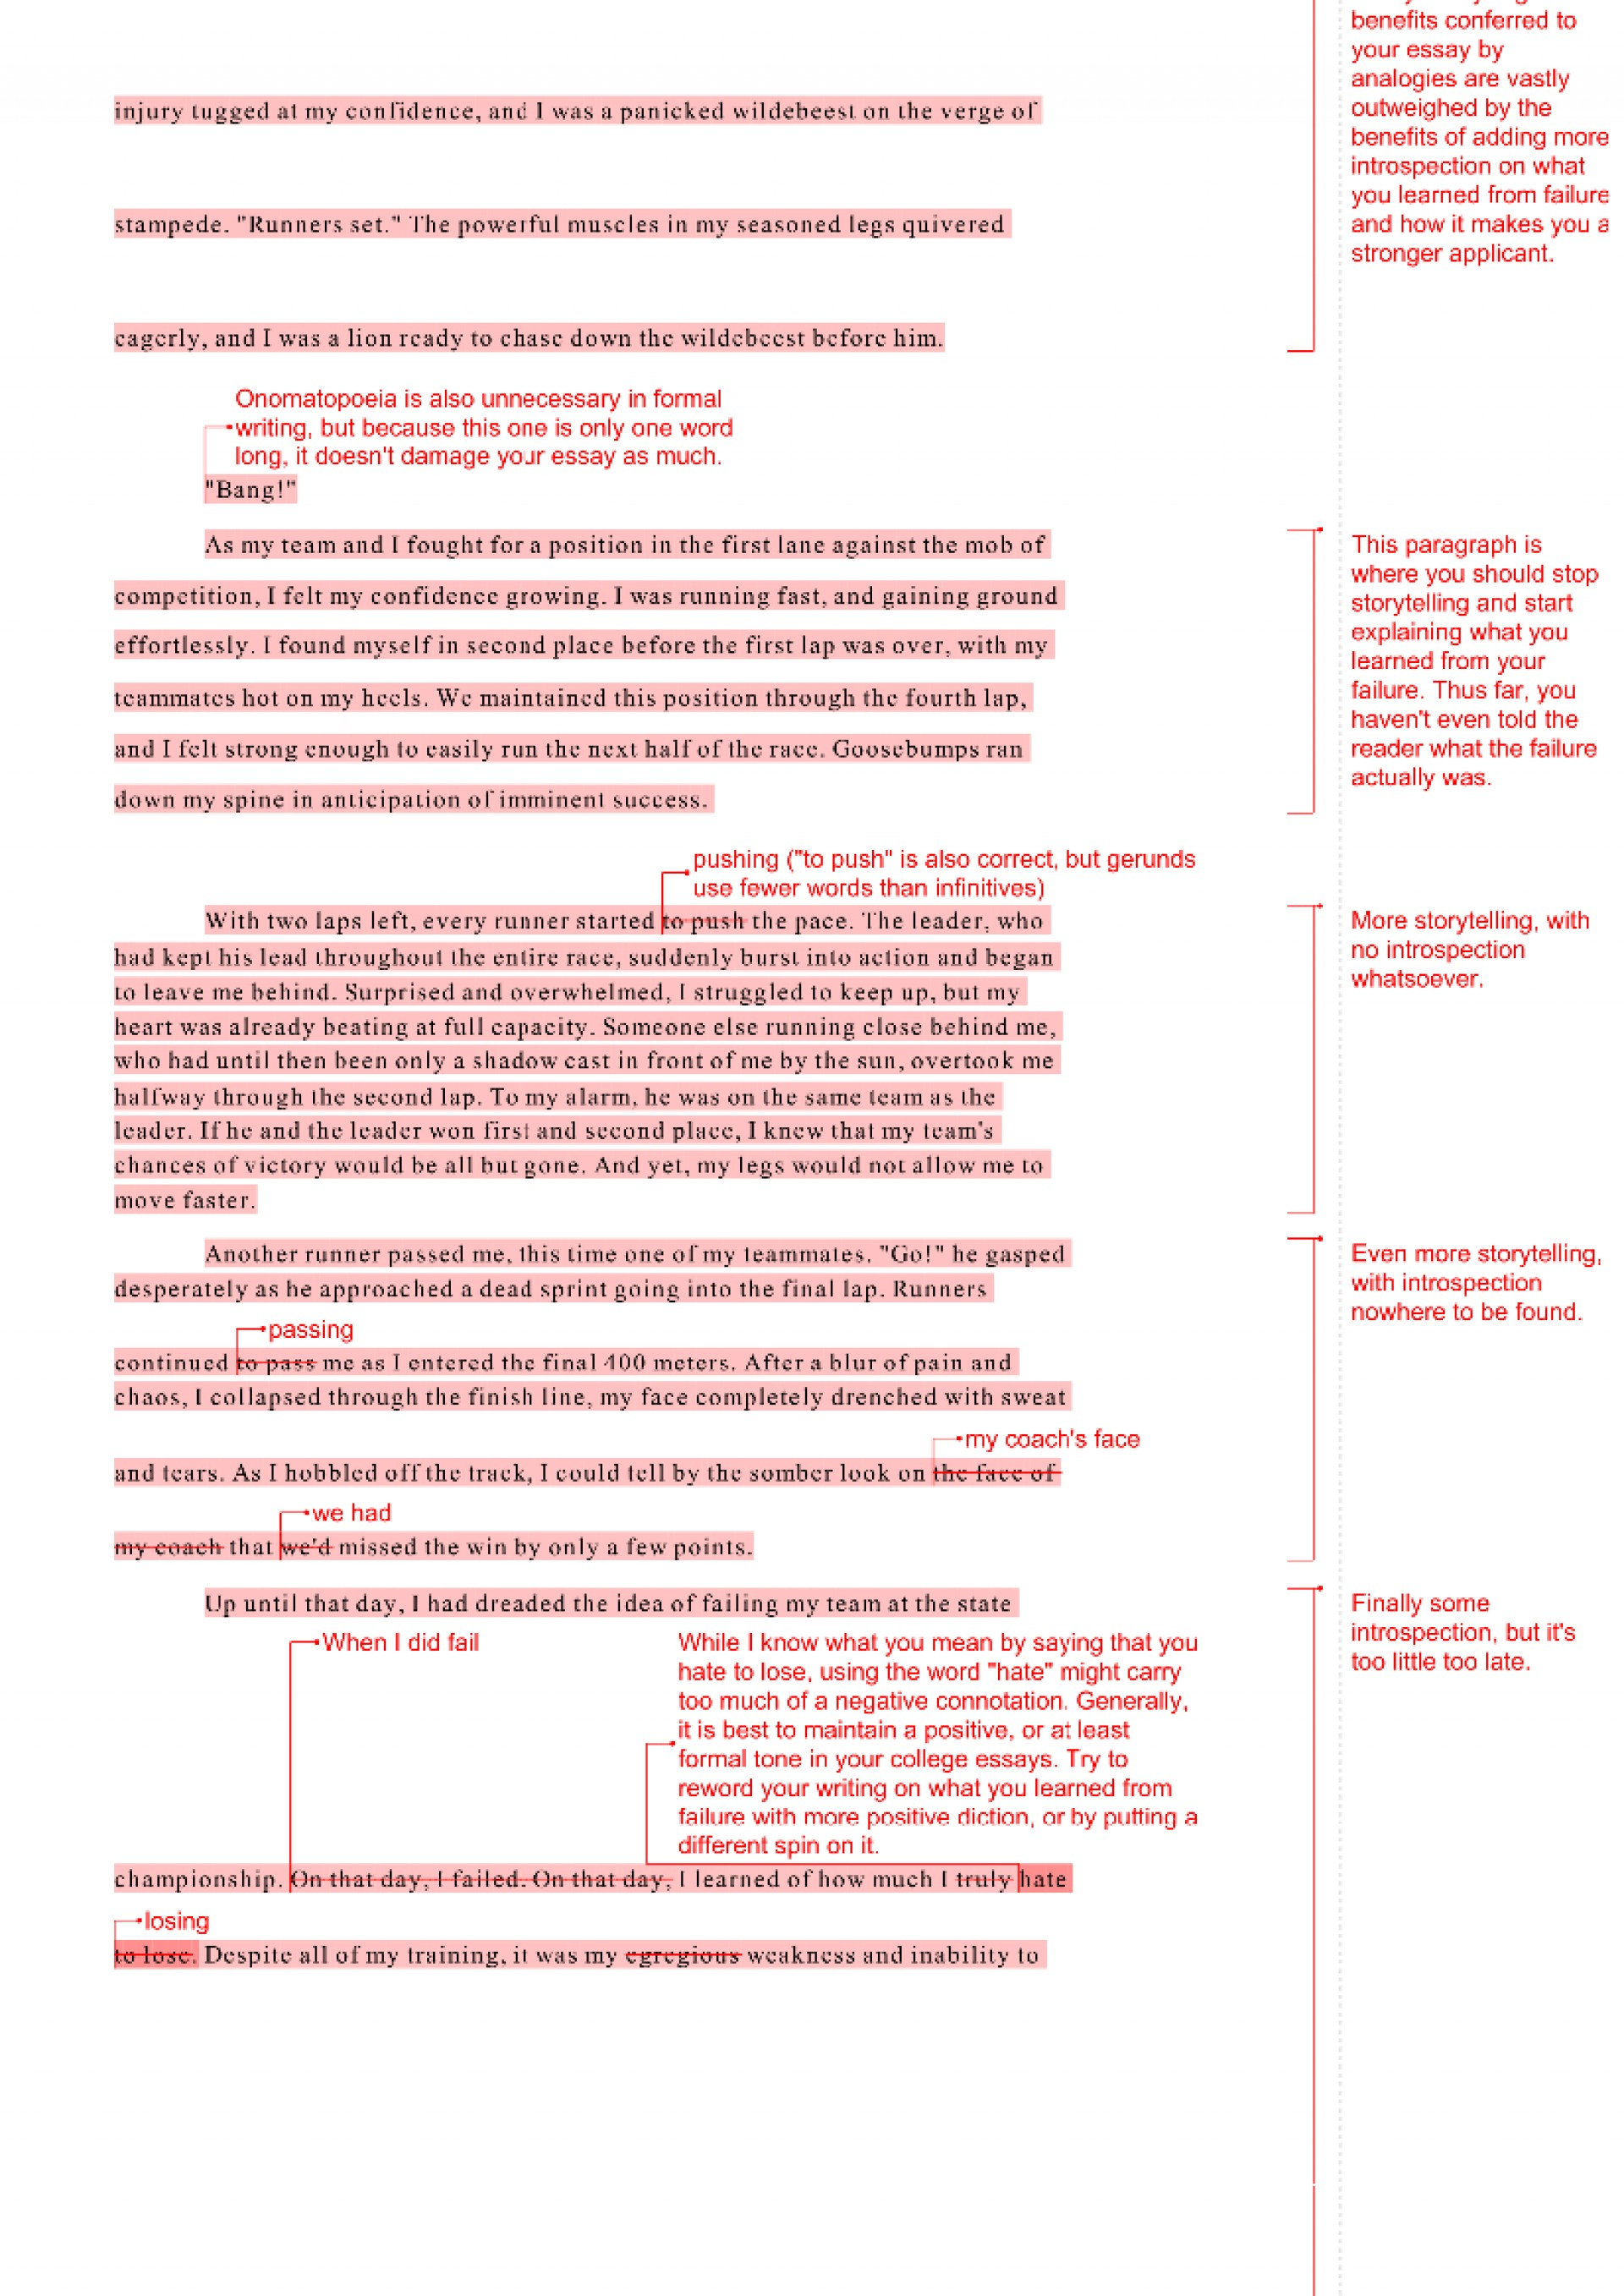 002 Essay Example Revise My Professor Quality Writing Feedback On Student Revision Examp Archaicawful How Can I Paper For Me Free 1920